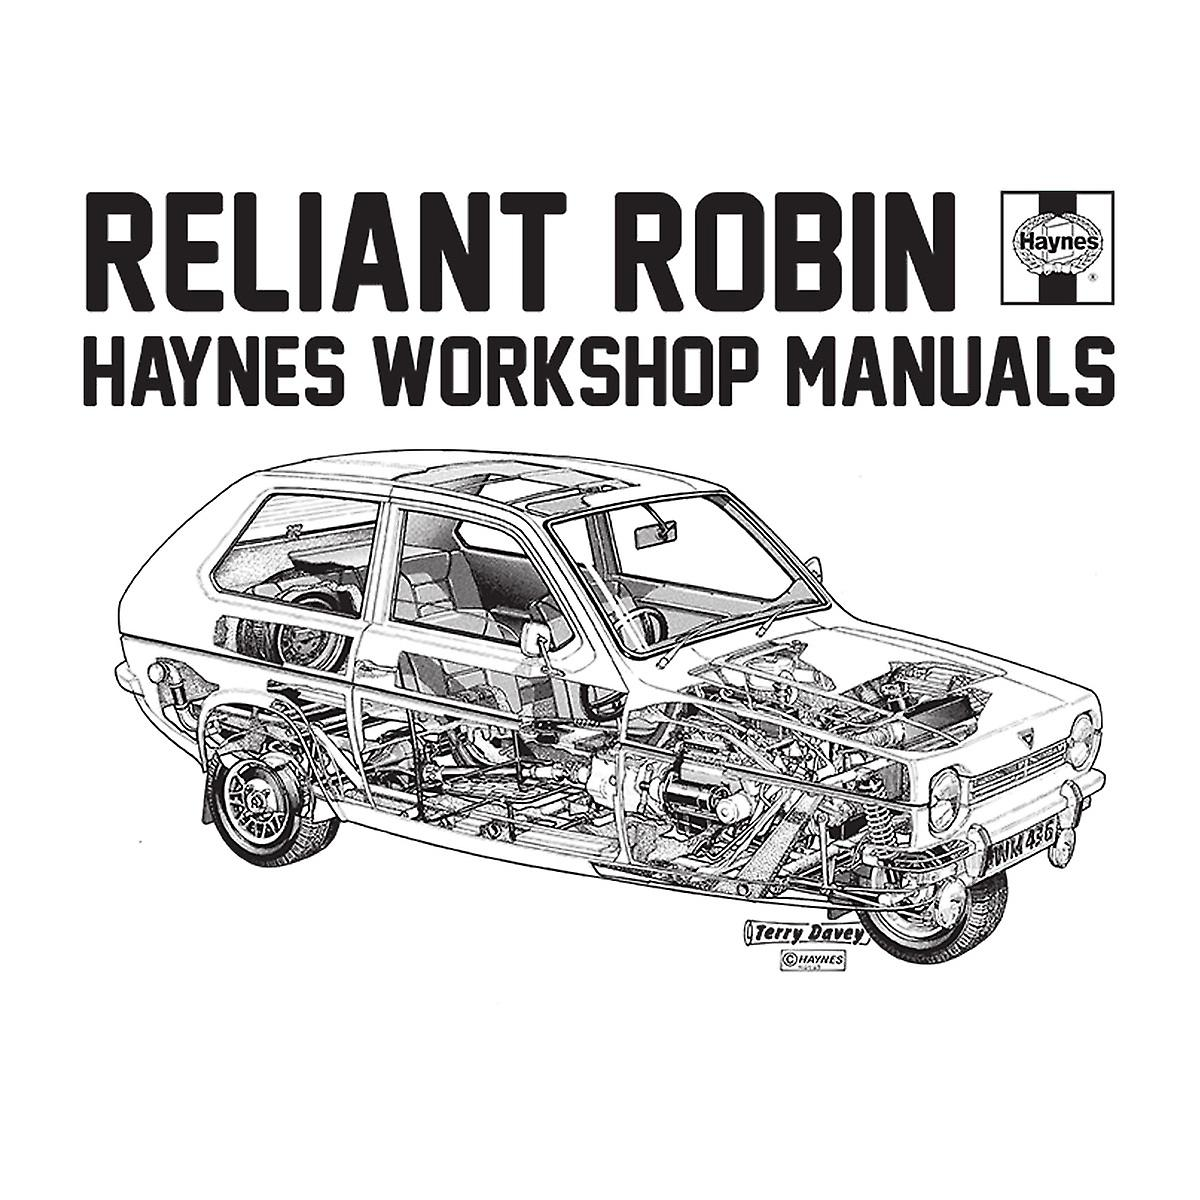 Haynes Workshop Manual Reliant Robin Black Women's Hooded